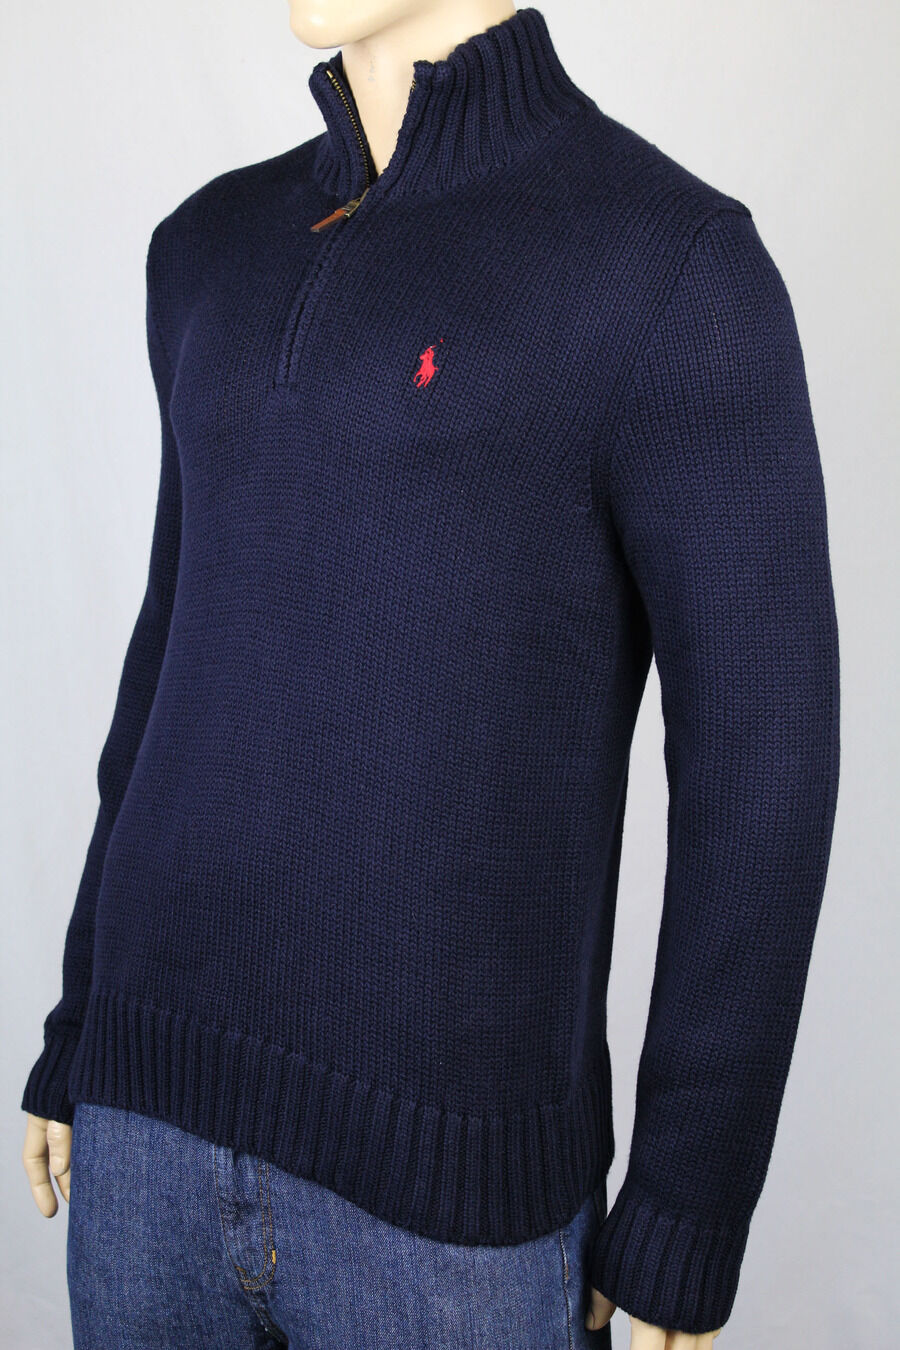 Polo Ralph Lauren Large L Navy bluee 1 2 Half Zip Sweater Red Pony NWT